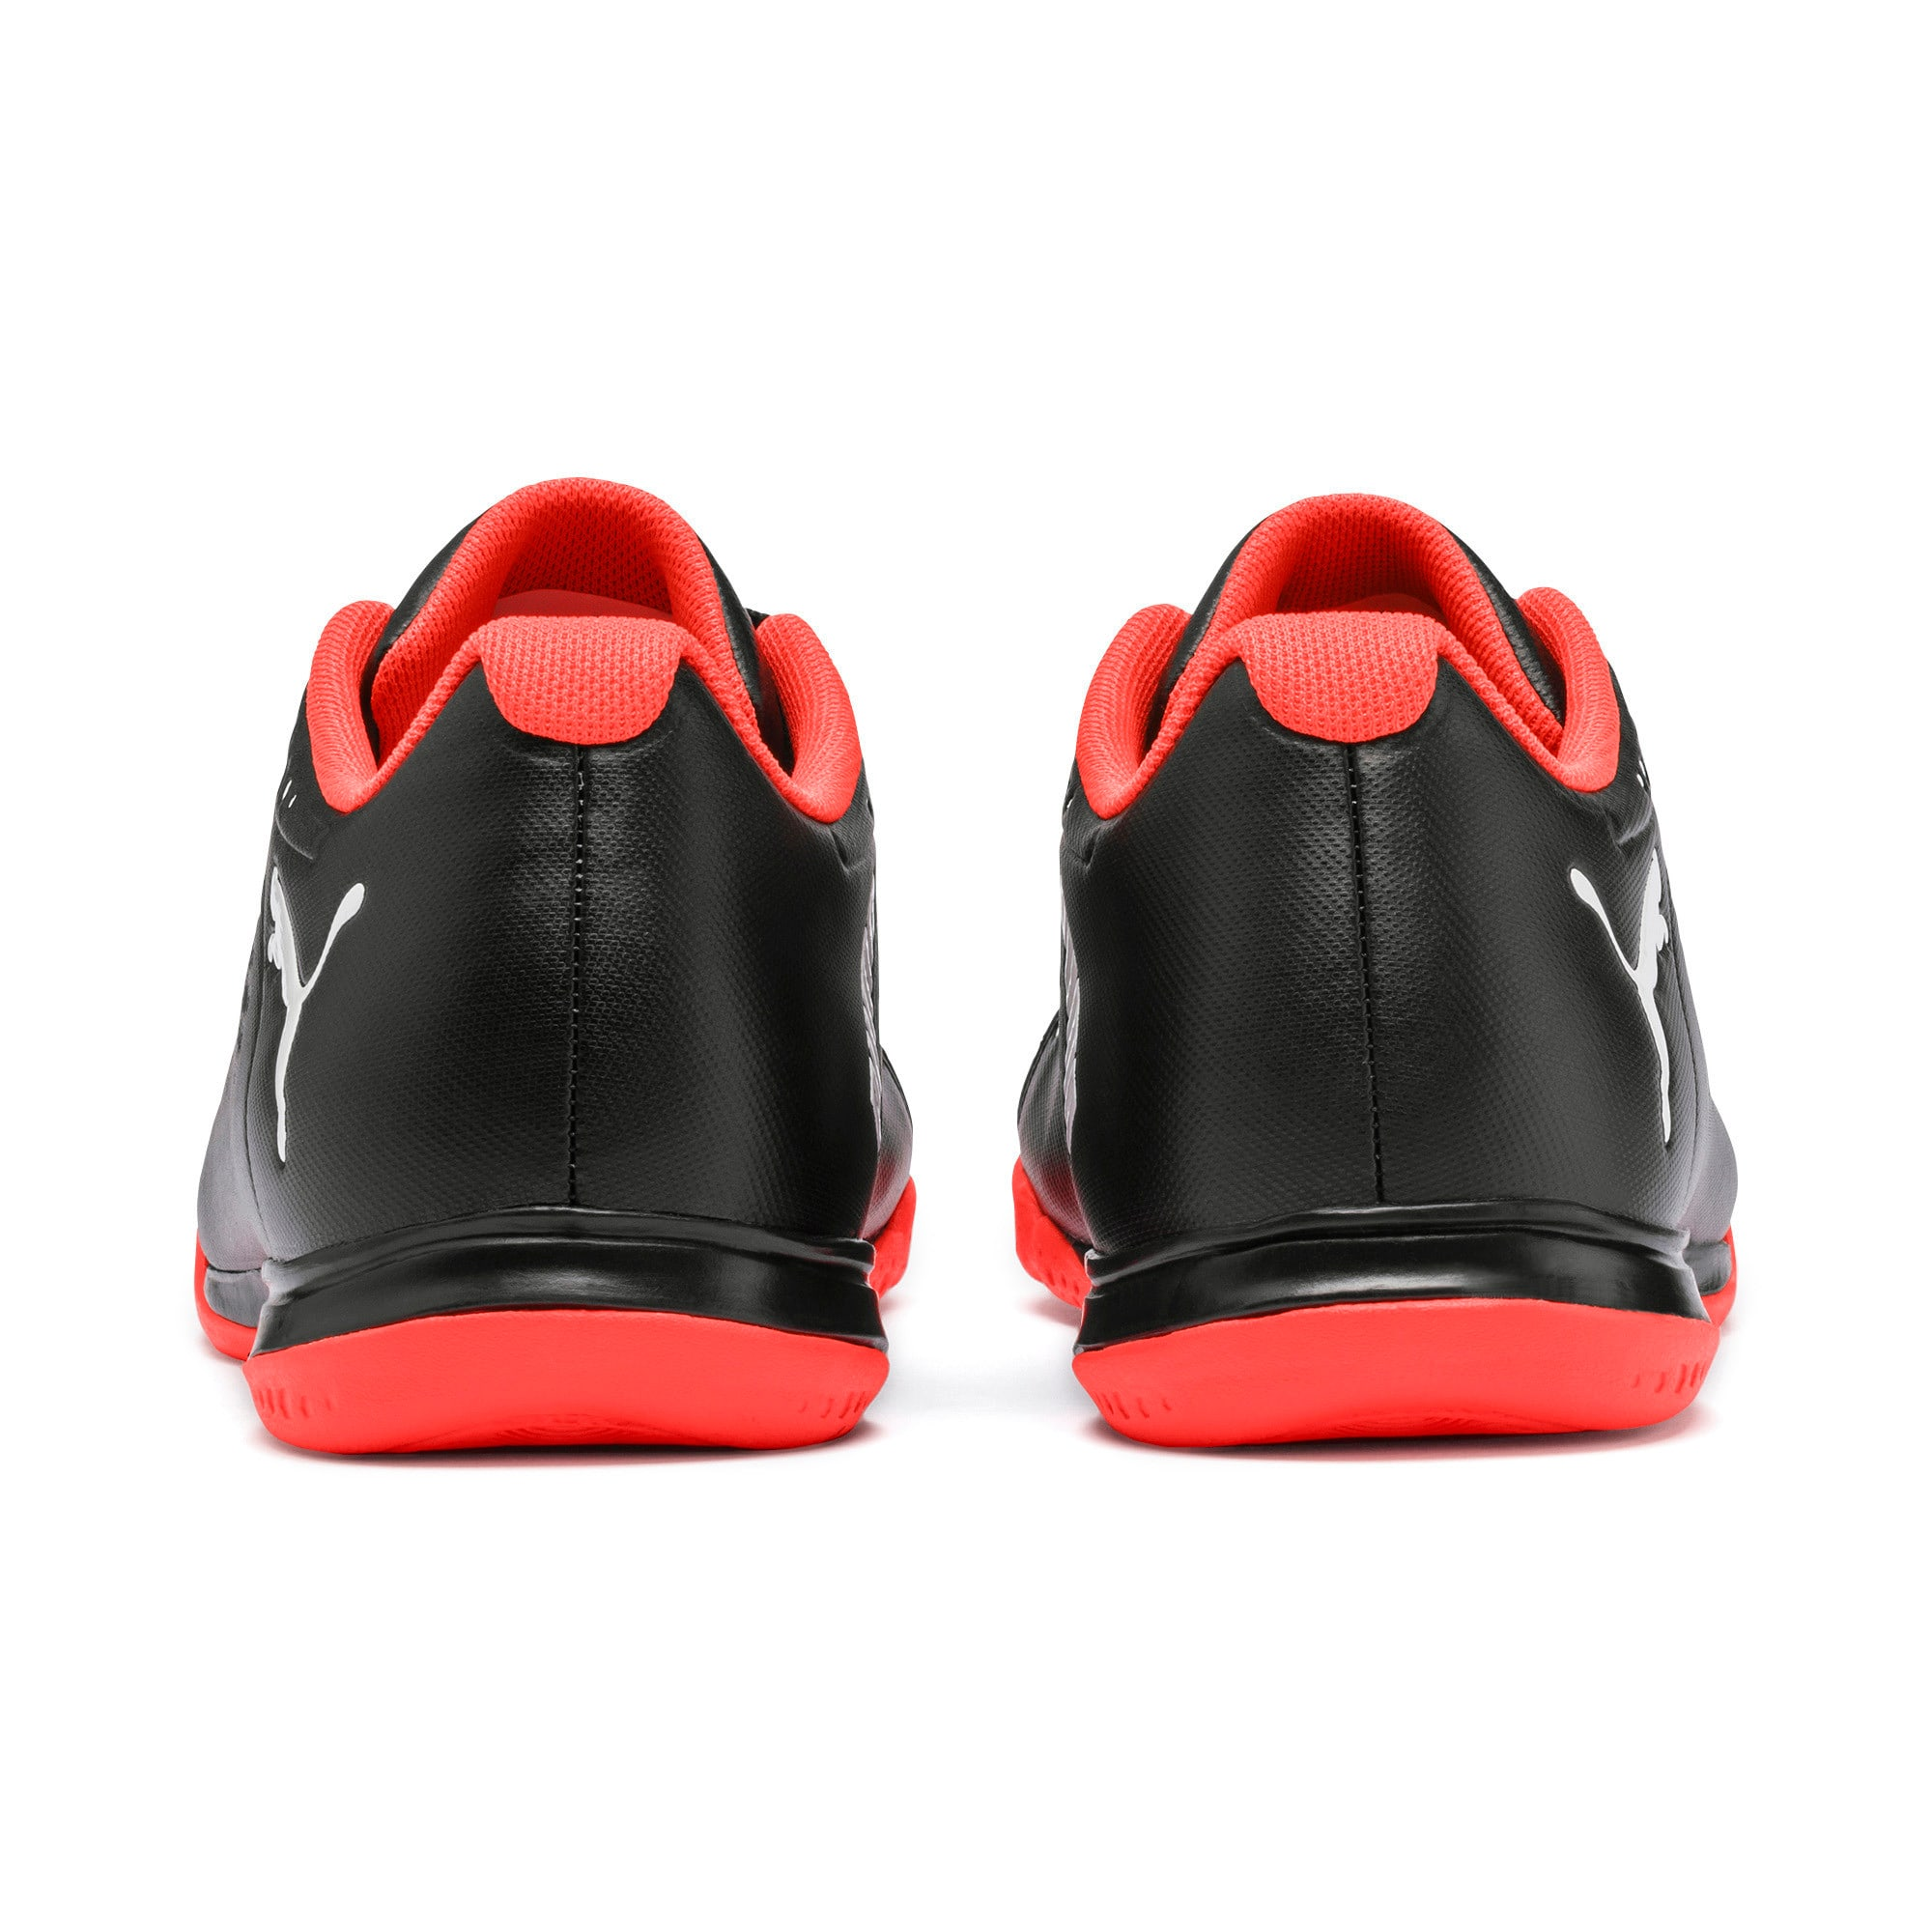 Thumbnail 3 of Sharp XT 2 Youth Trainers, Black-Puma White-Nrgy Red, medium-IND